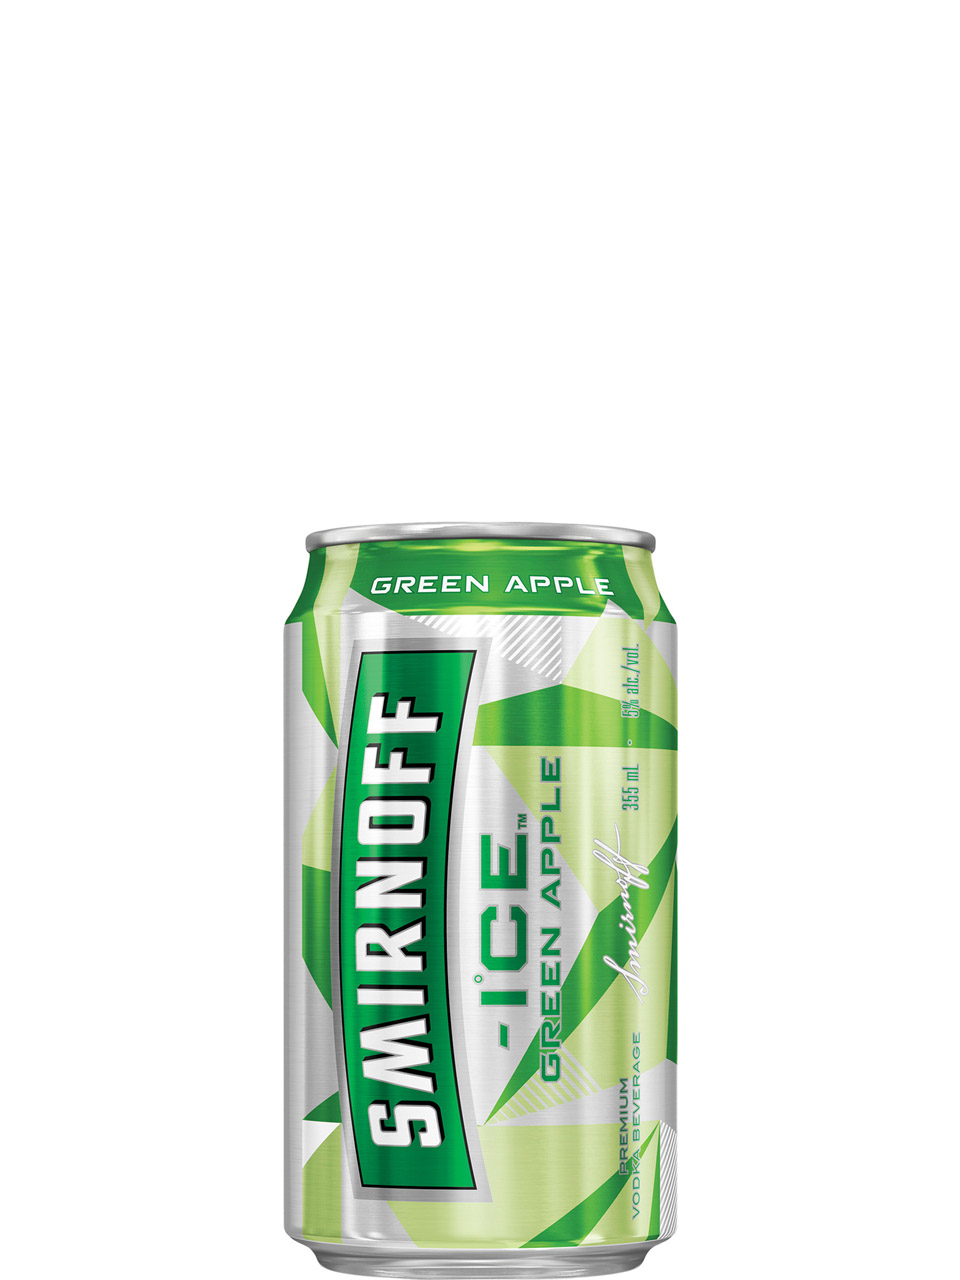 Smirnoff Ice Green Apple 6 Pack Cans